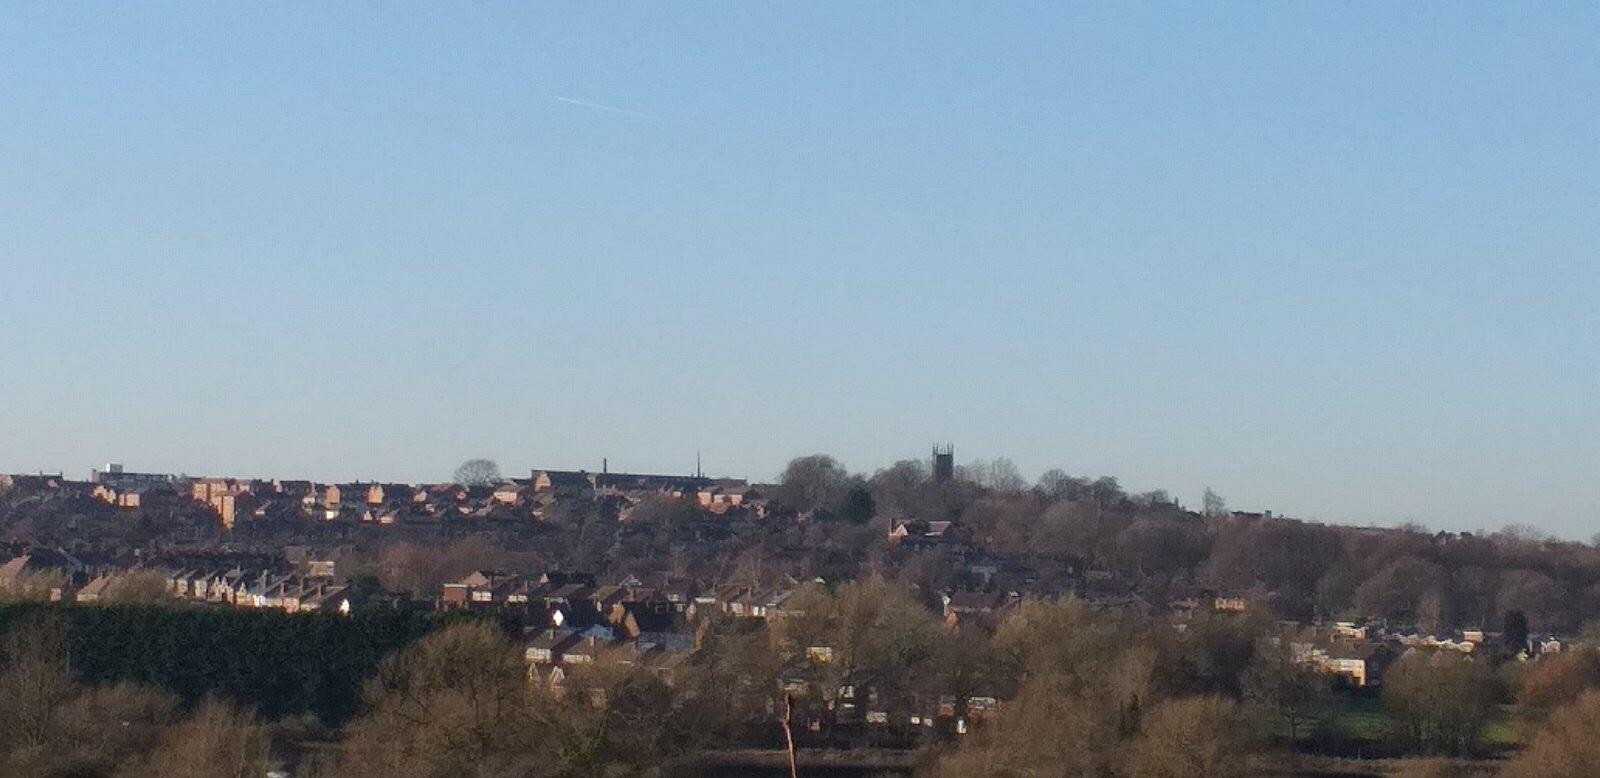 A view of Ilkeston from the nearby village Cossall